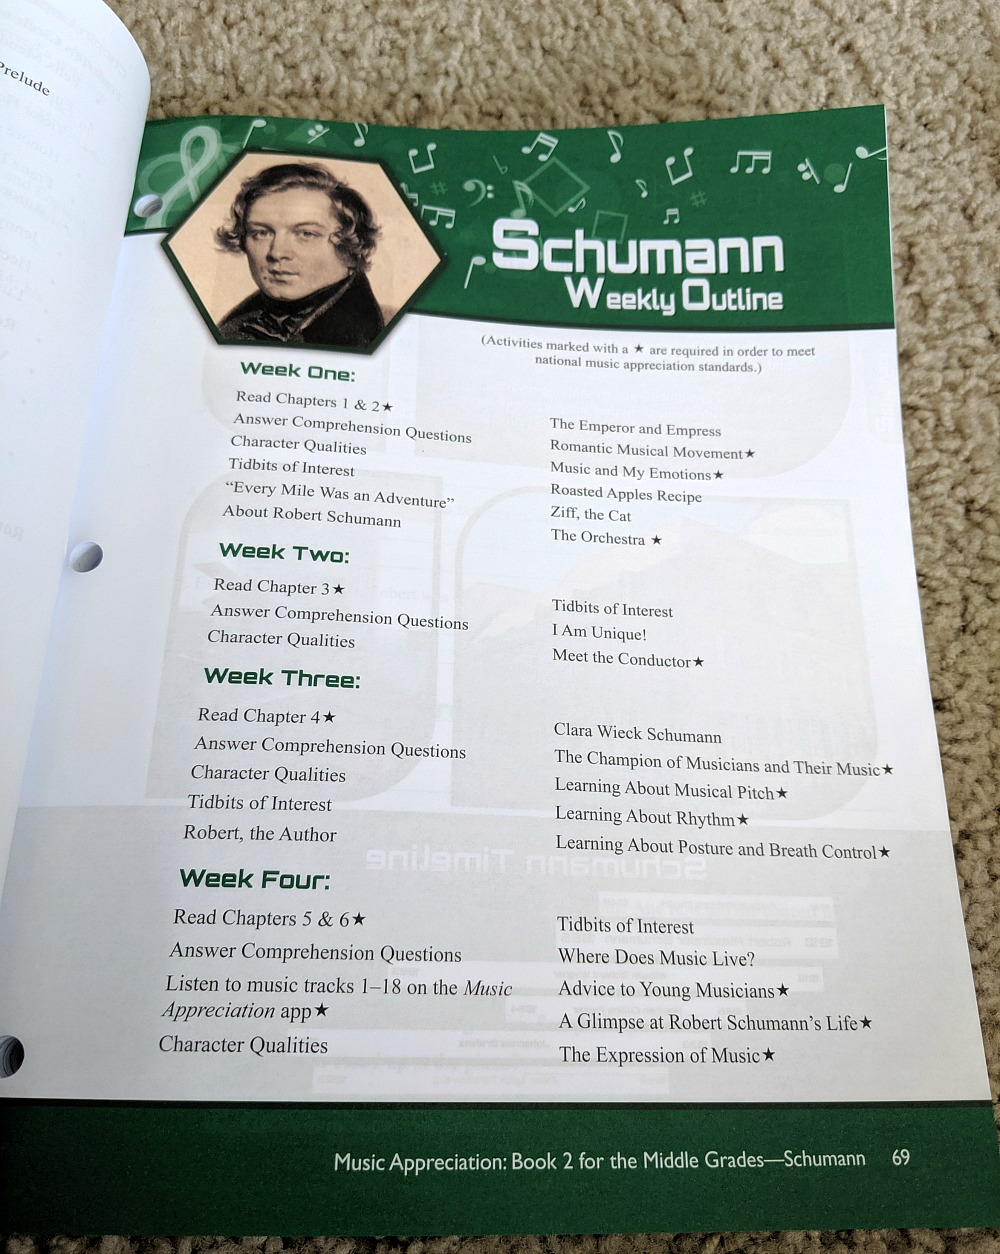 Music Appreciation Book 2 for the Middle Grades - Schumann Weekly Outline